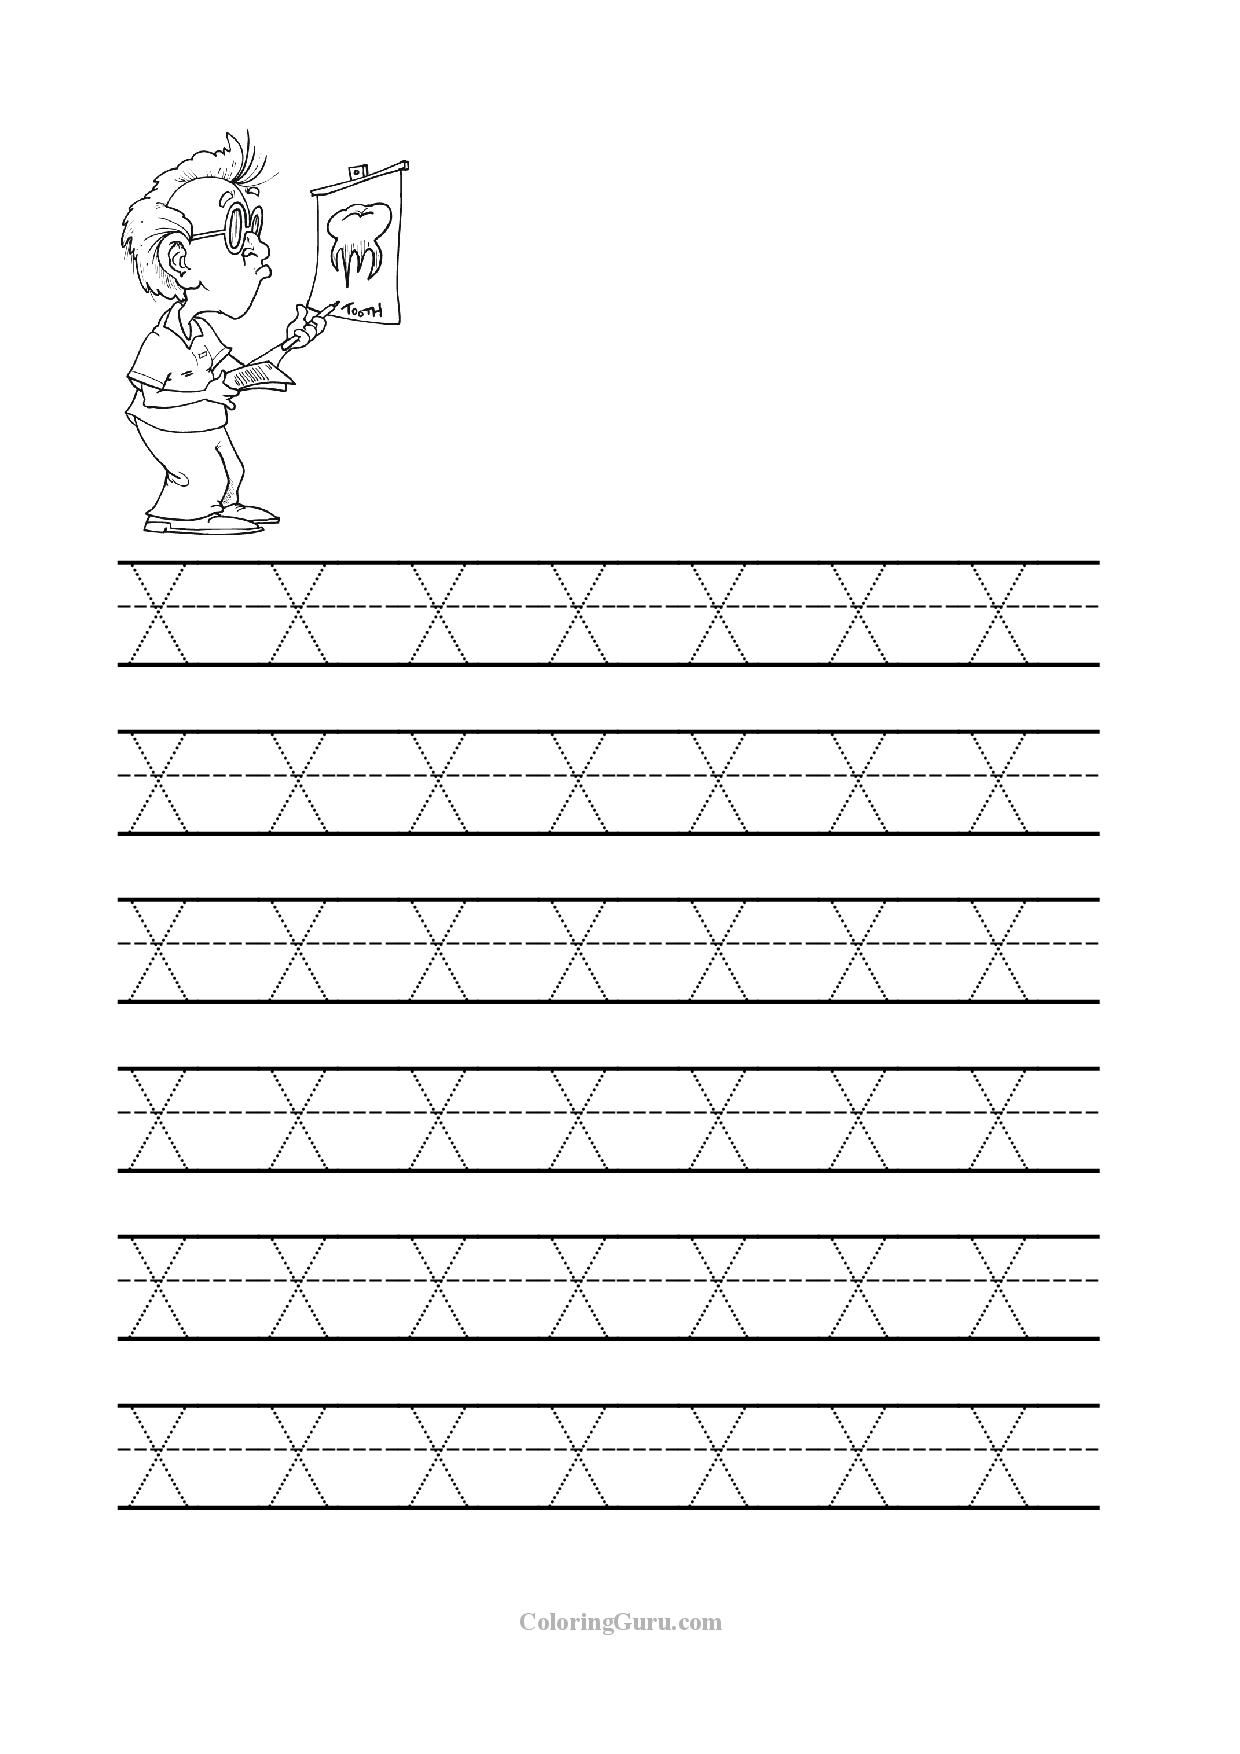 Free Worksheet Free Printable Preschool Worksheets Tracing Letters free printable tracing letter x worksheets for preschool preschool